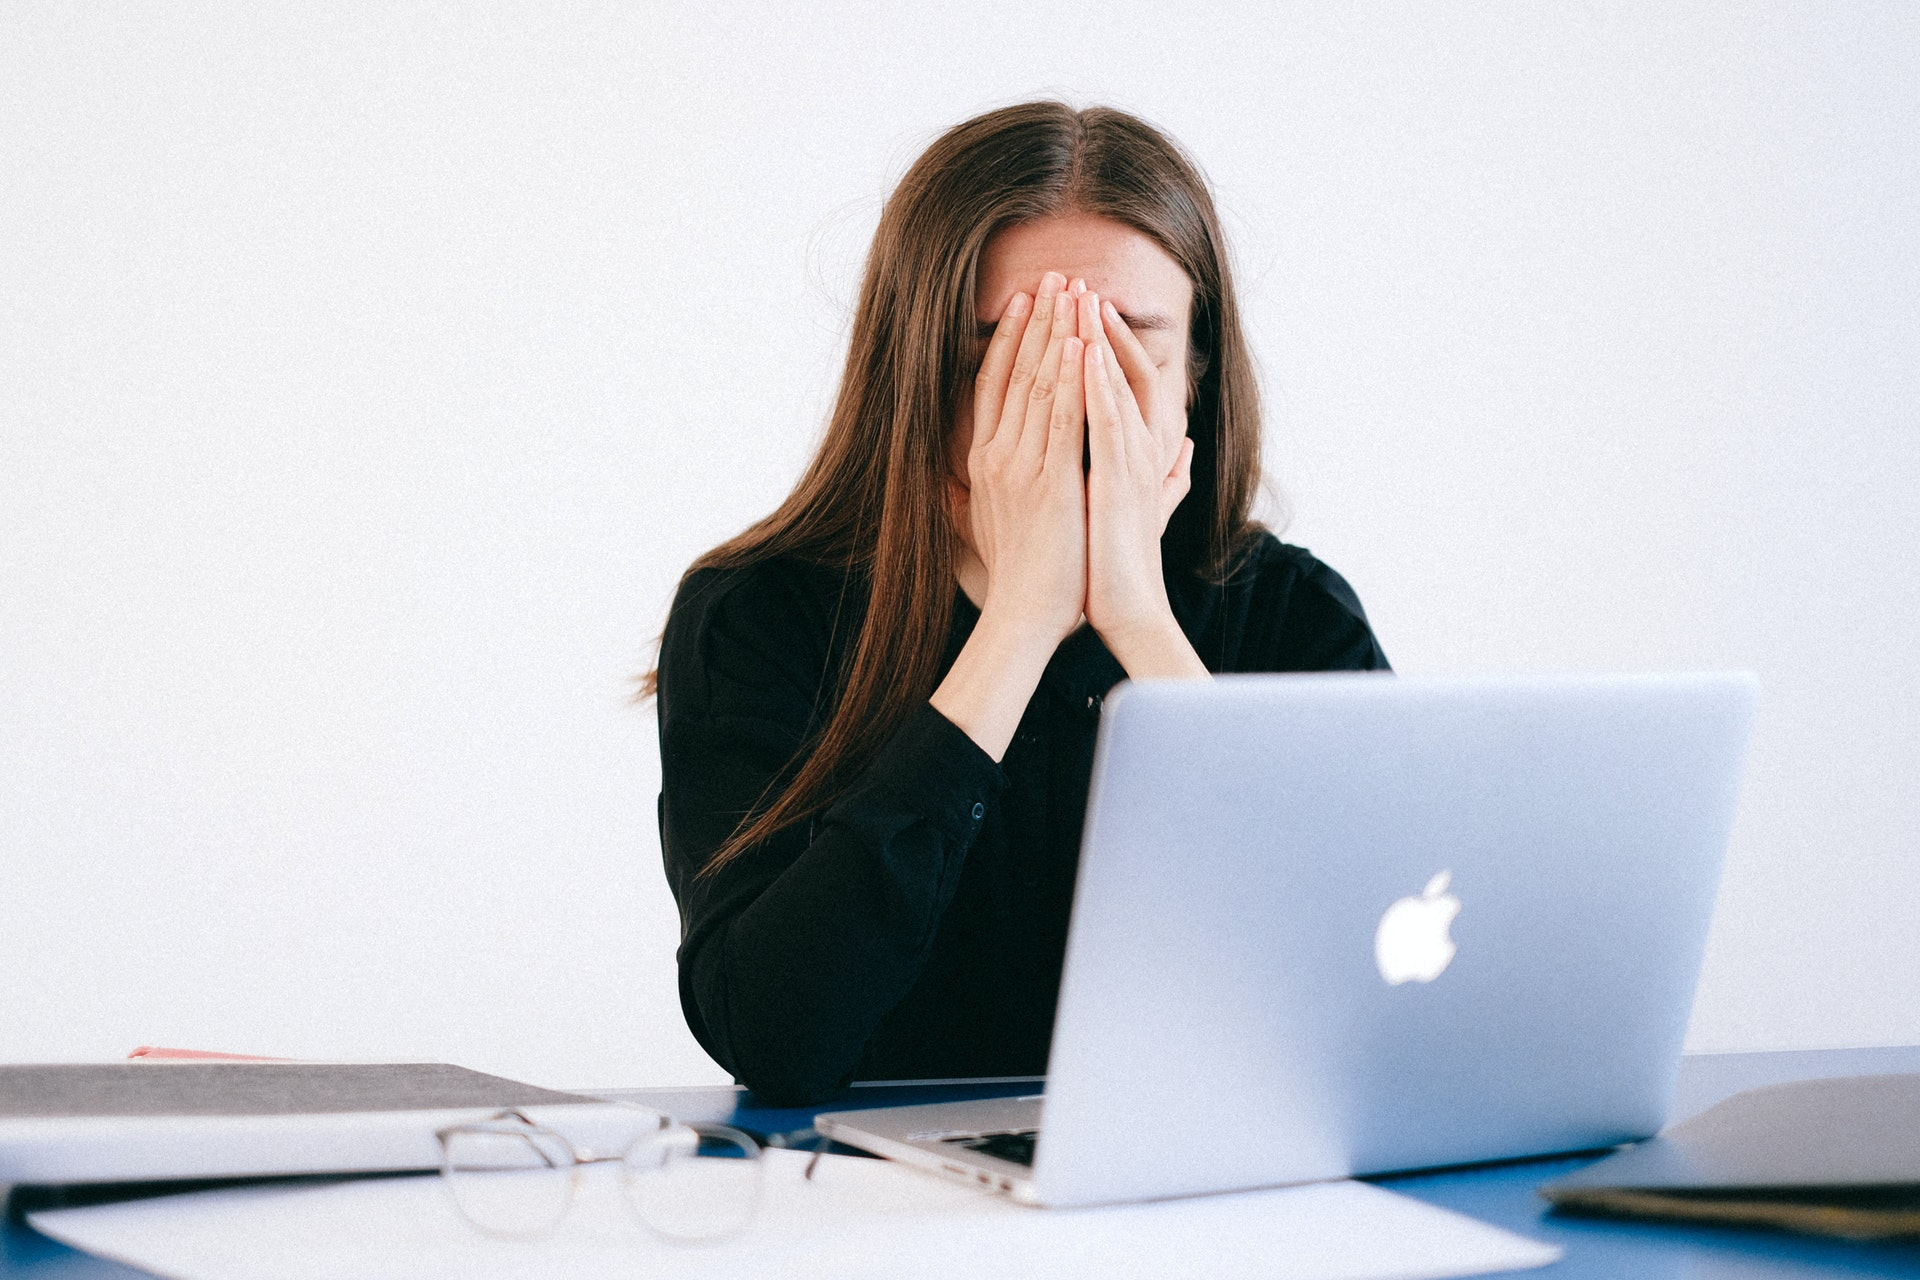 Stressed woman covering her face